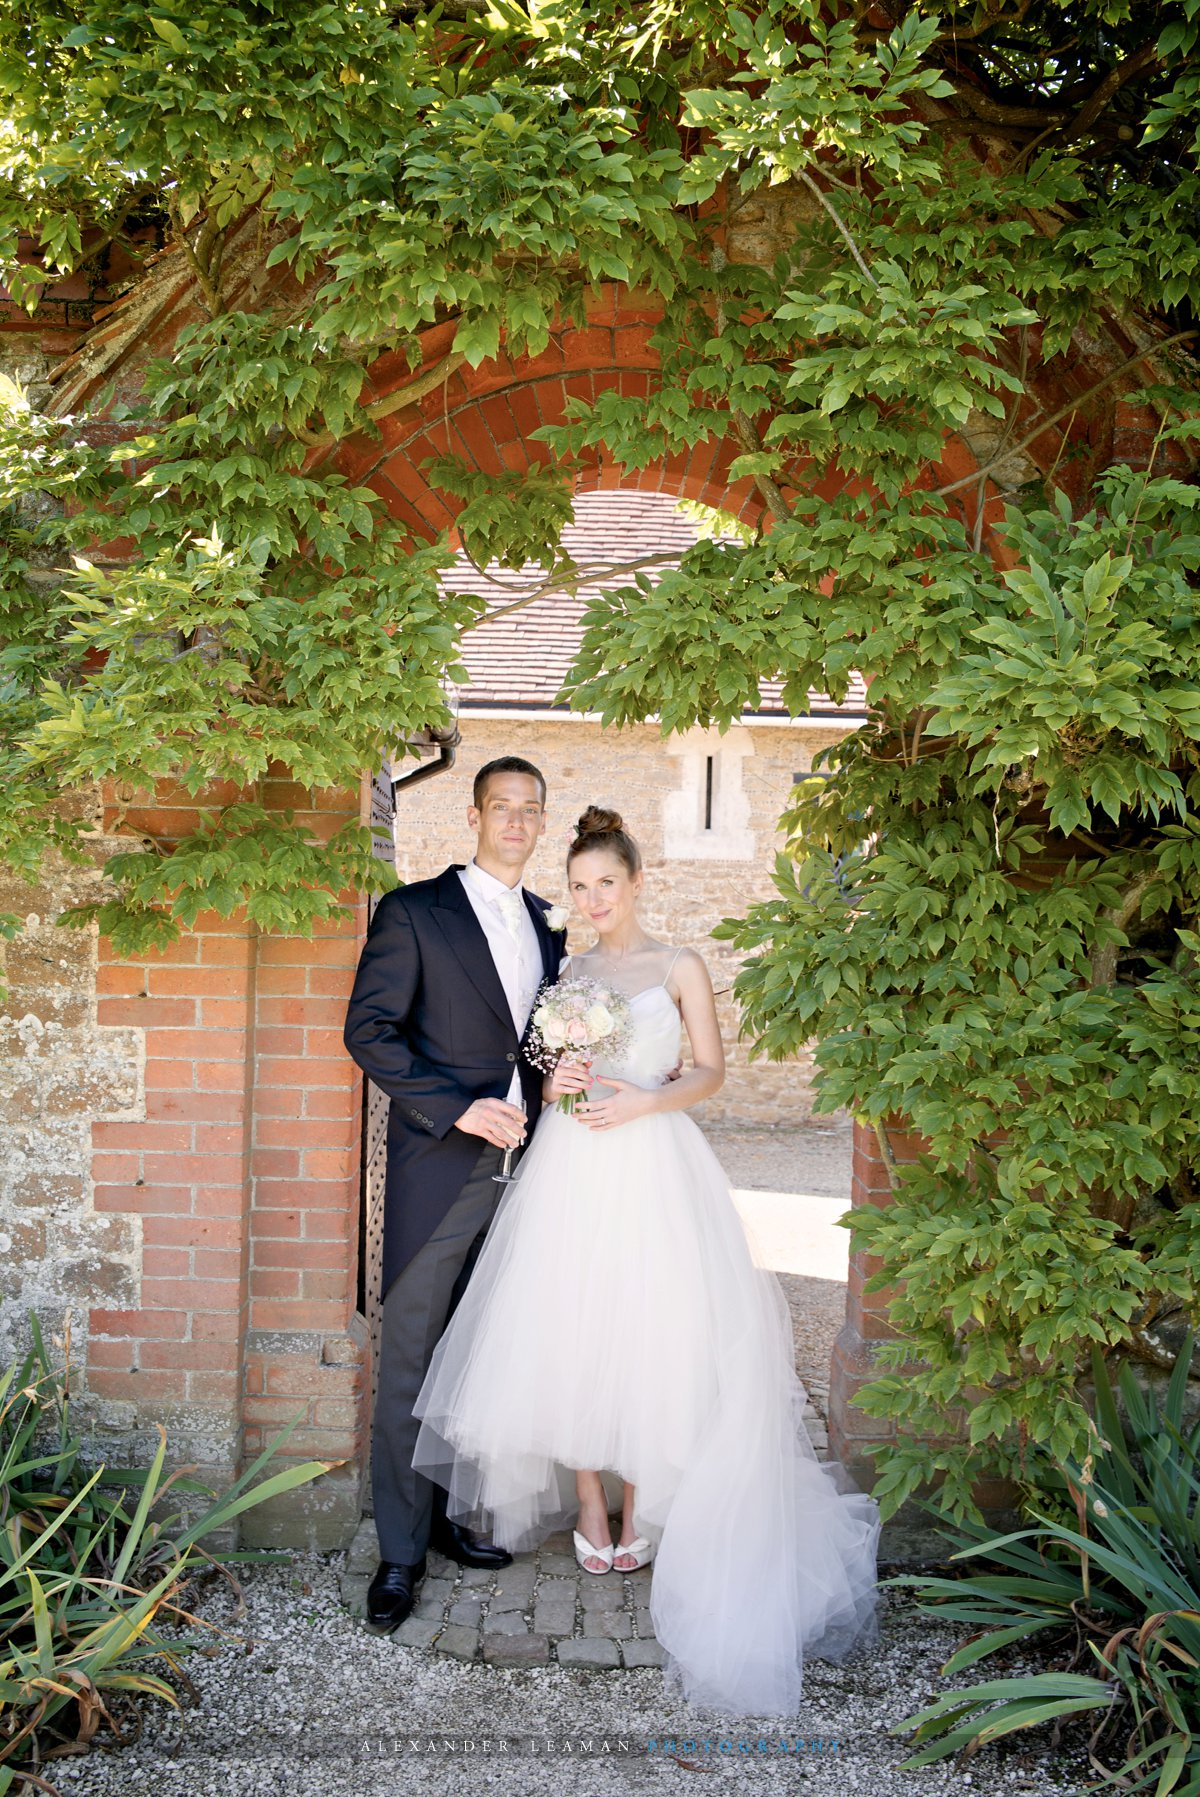 Stunning Bride and Groom at Loseley Park